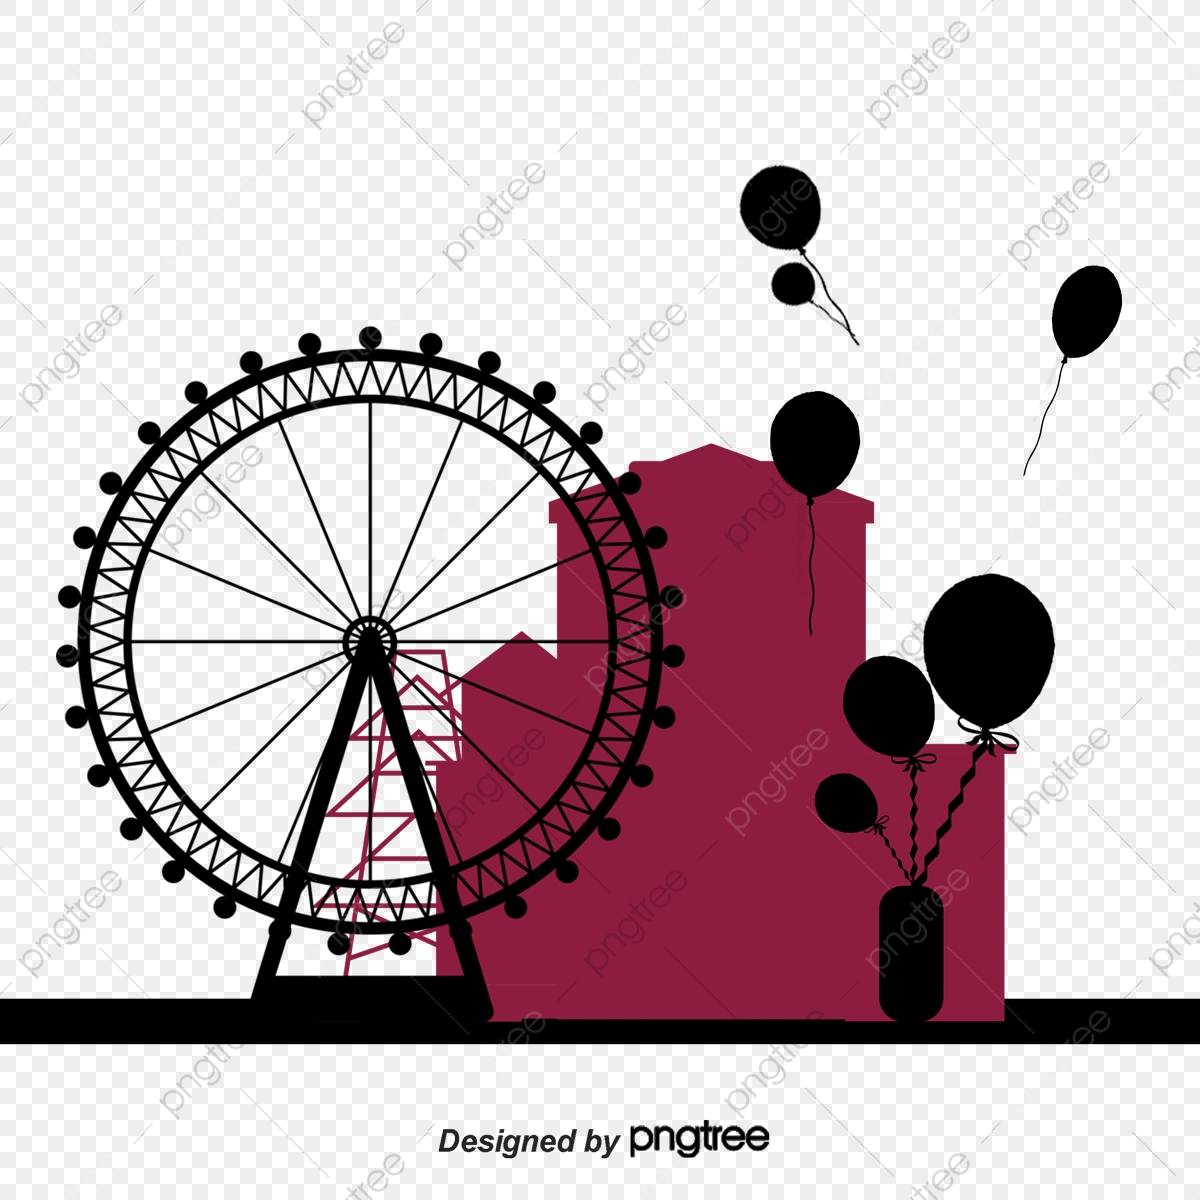 Ferris Wheel Silhouette Wheel Vector Silhouette Vector Ferris Wheel Png Transparent Clipart Image And Psd File For Free Download